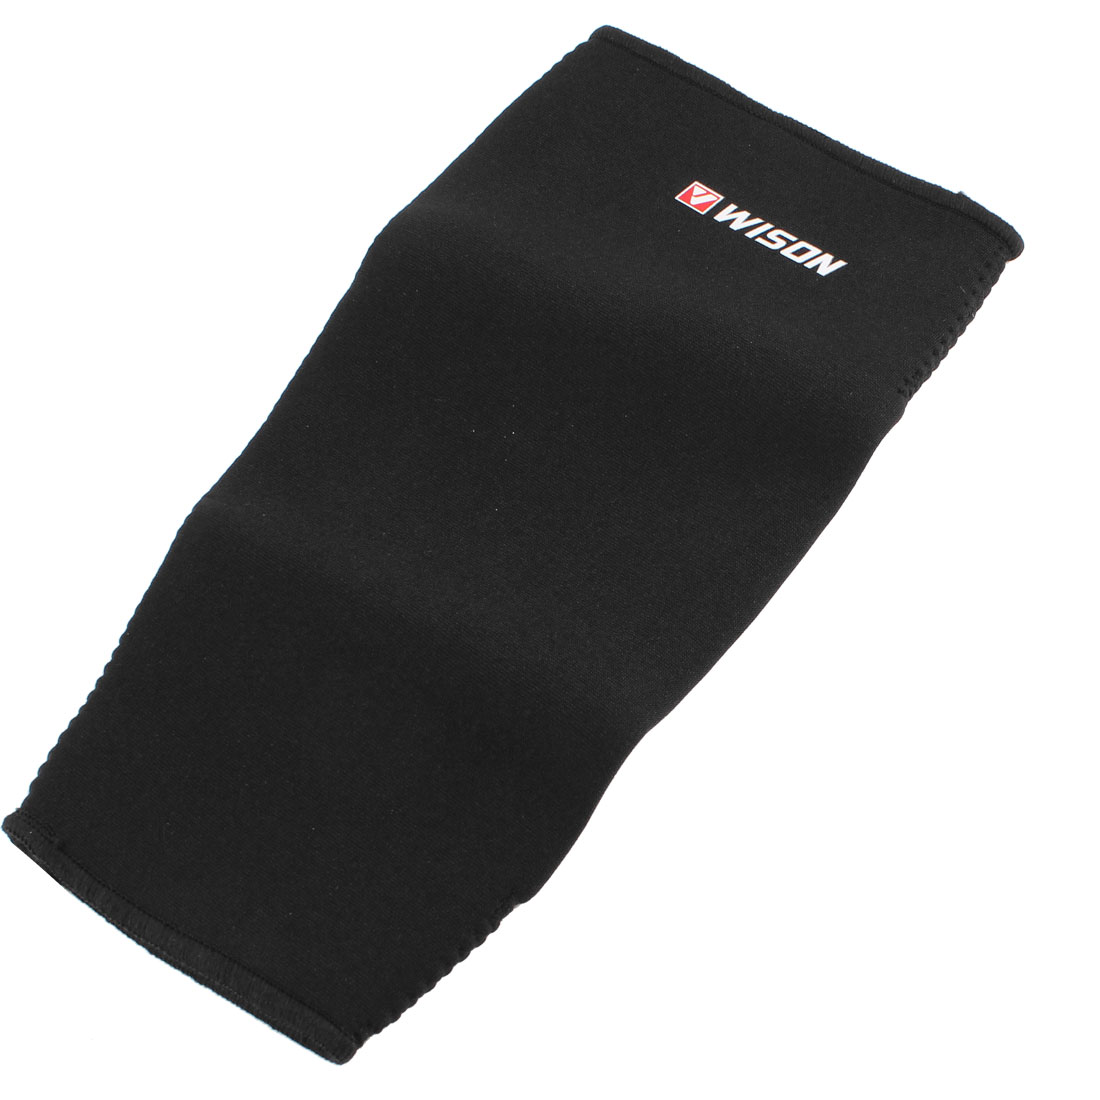 Outdoor Sports Black Stretchy Neoprene Sleeve Crus Calf Support Protector for Man